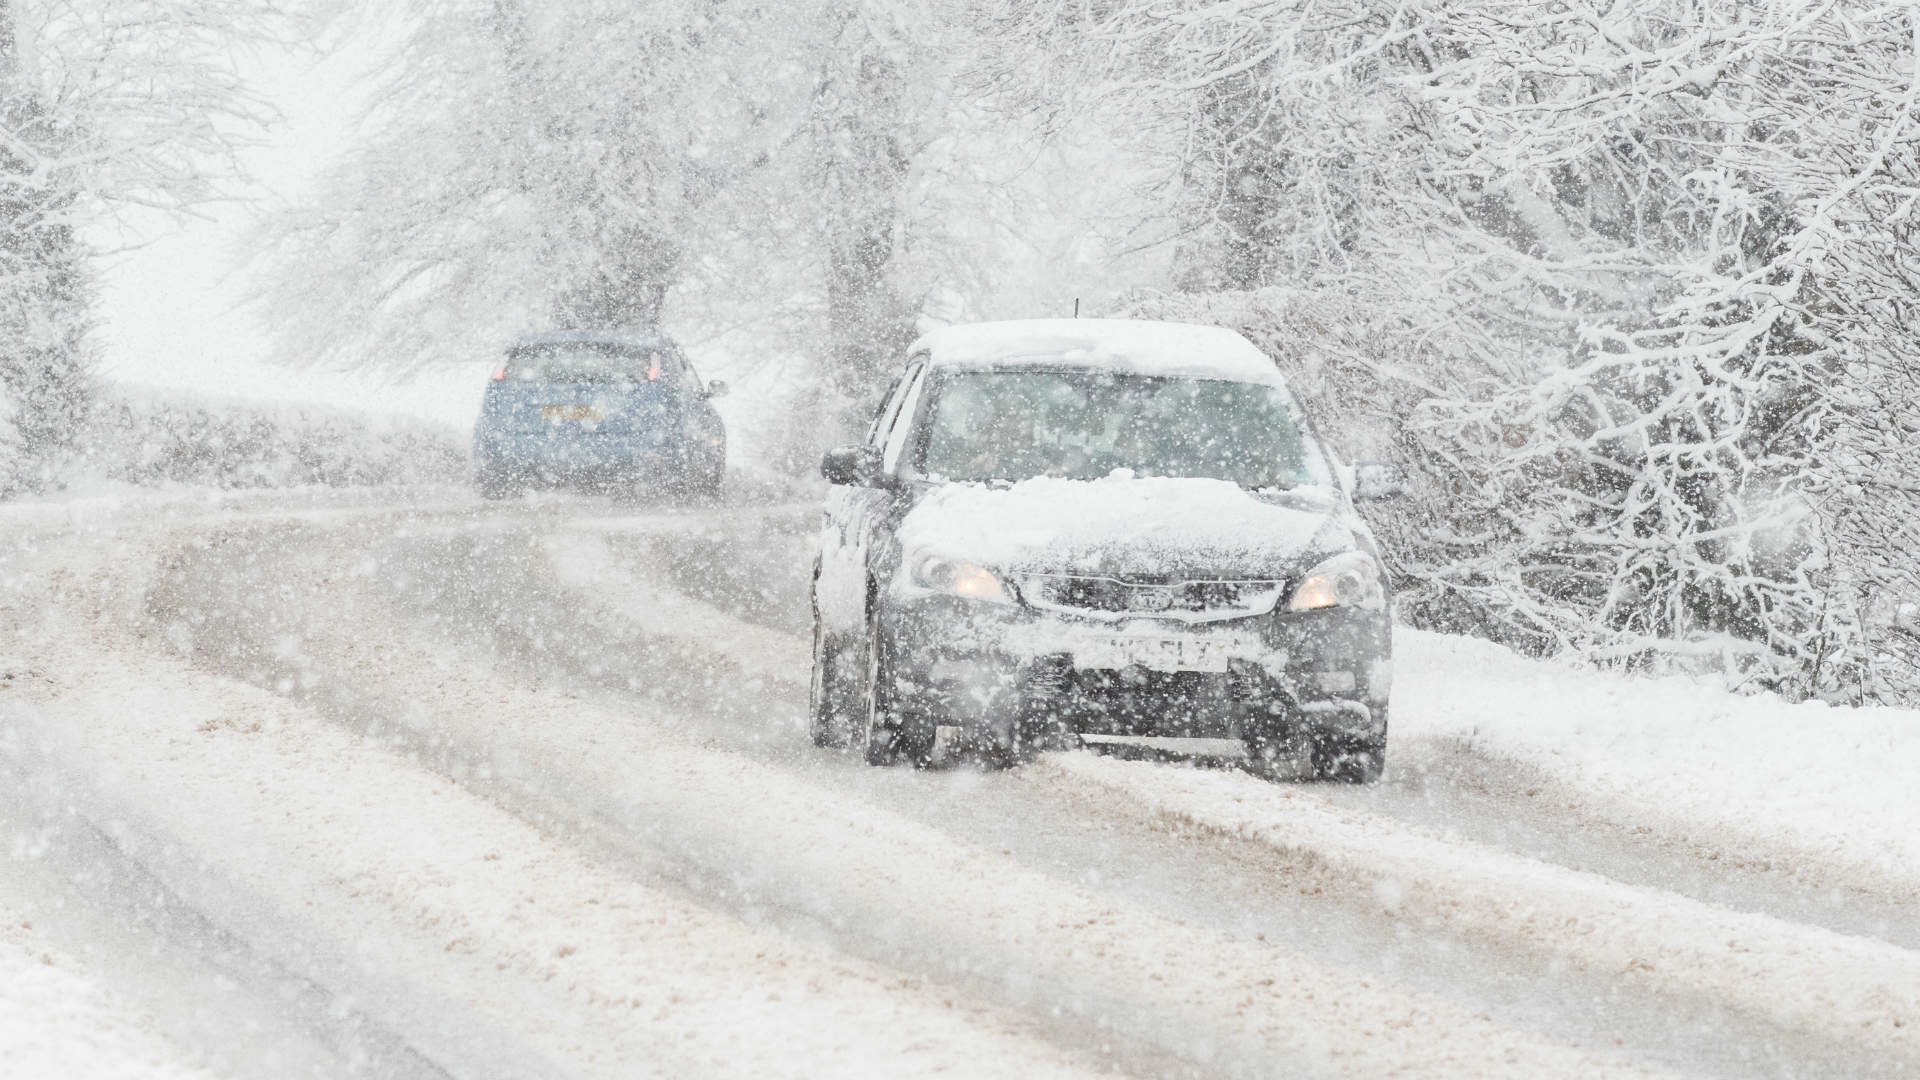 Top tips for safer winter driving